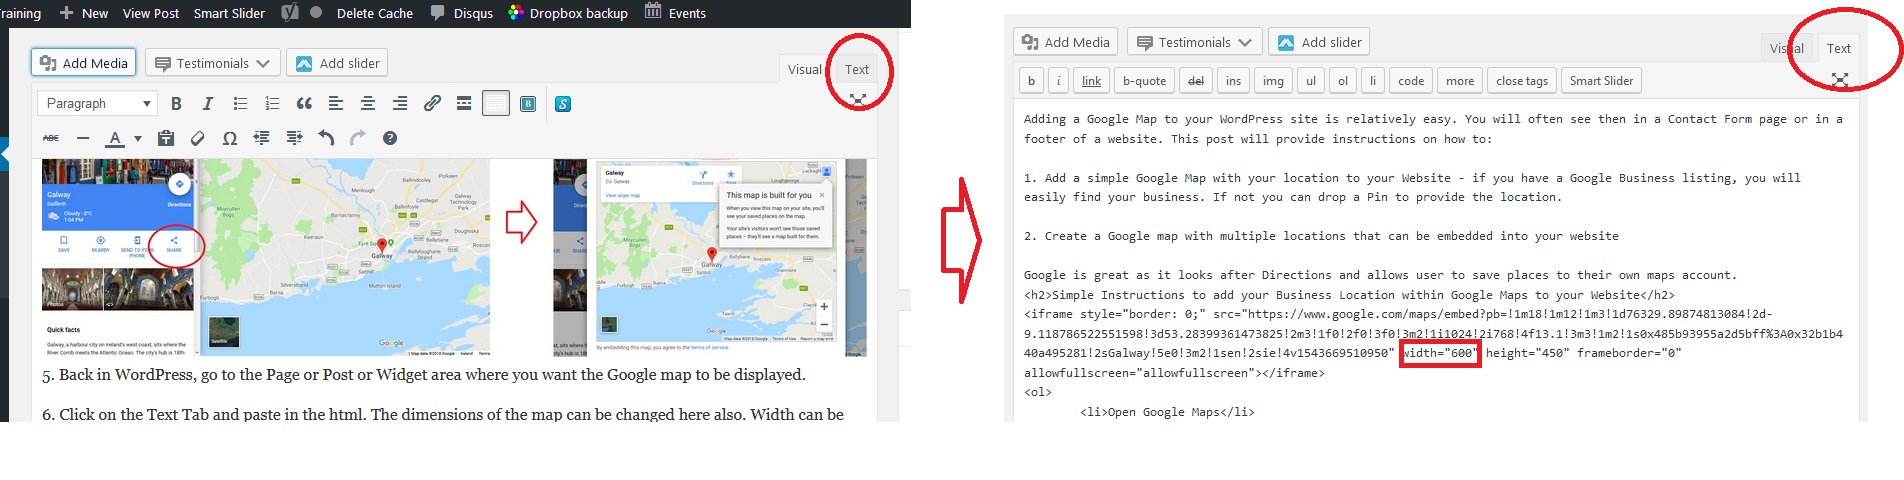 WordPress Text Tab within Visual Editor to paste Embed Code